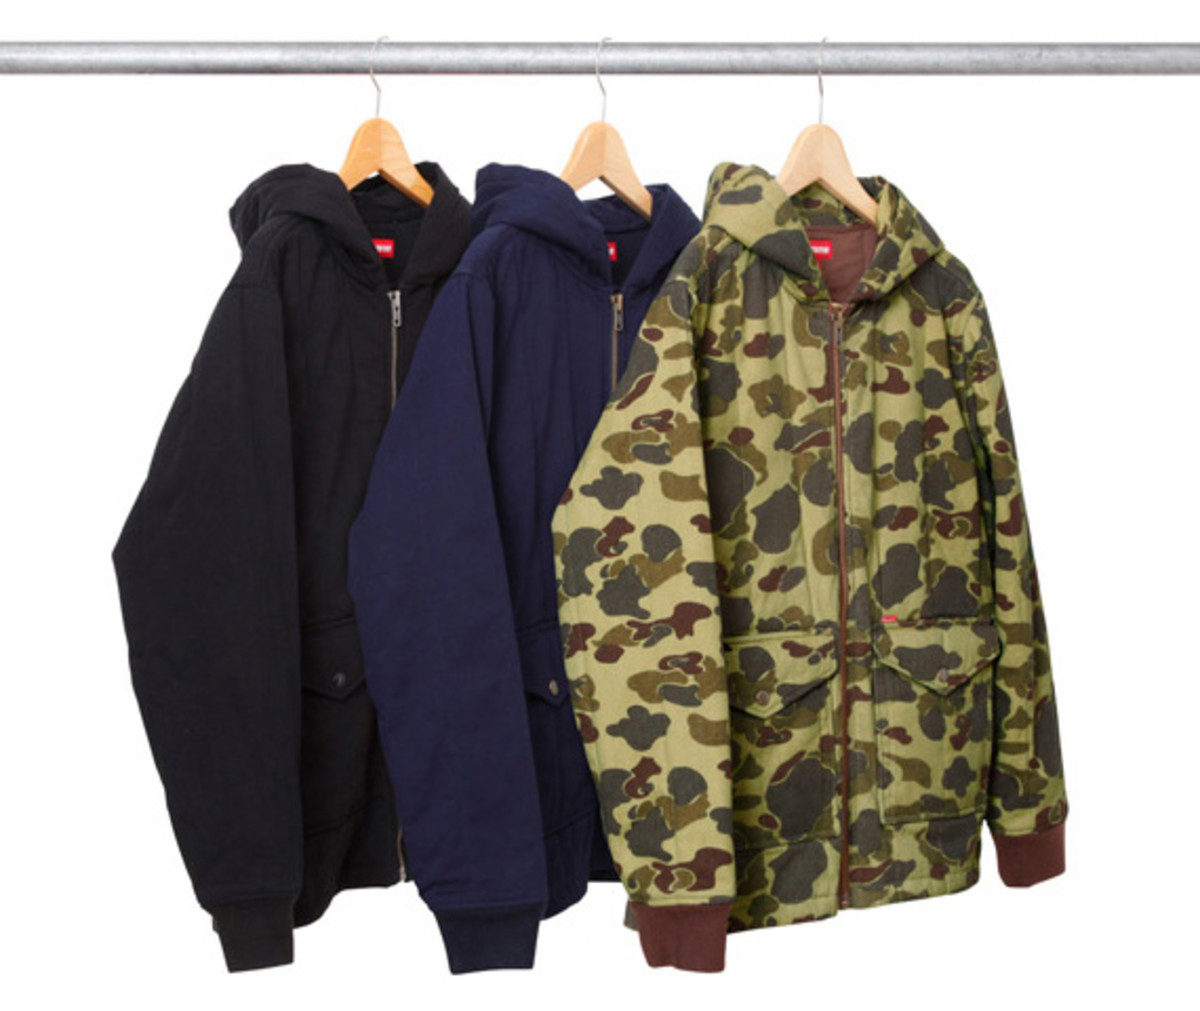 supreme_fw10_collection_apparel_023